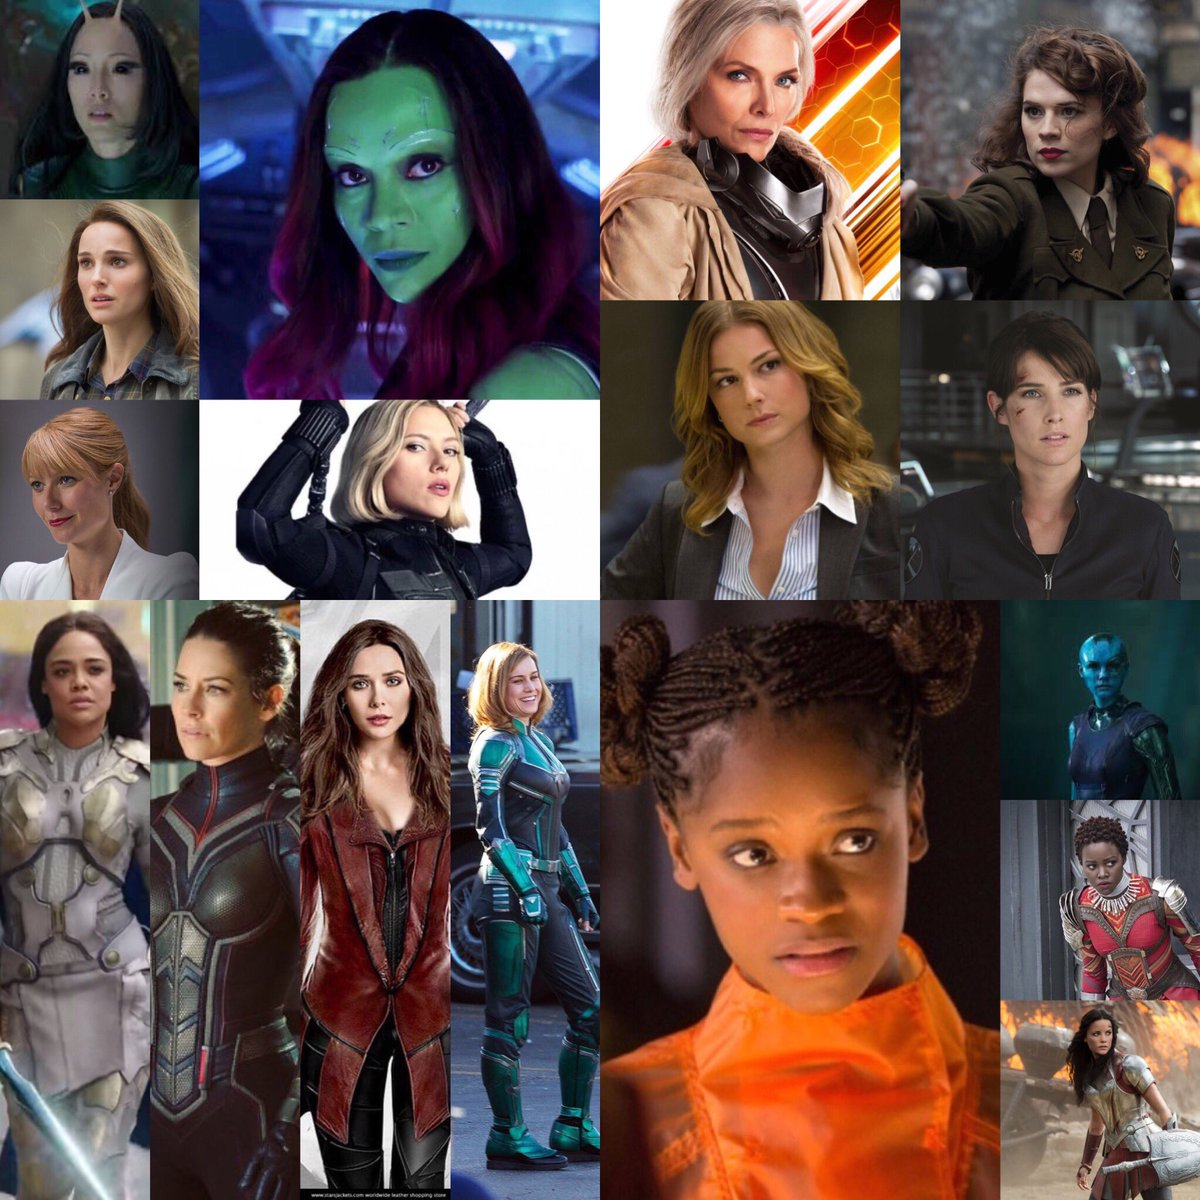 Dear @Marvel, some thoughts on your next NEXT #Avengers movie. Love, Nat.